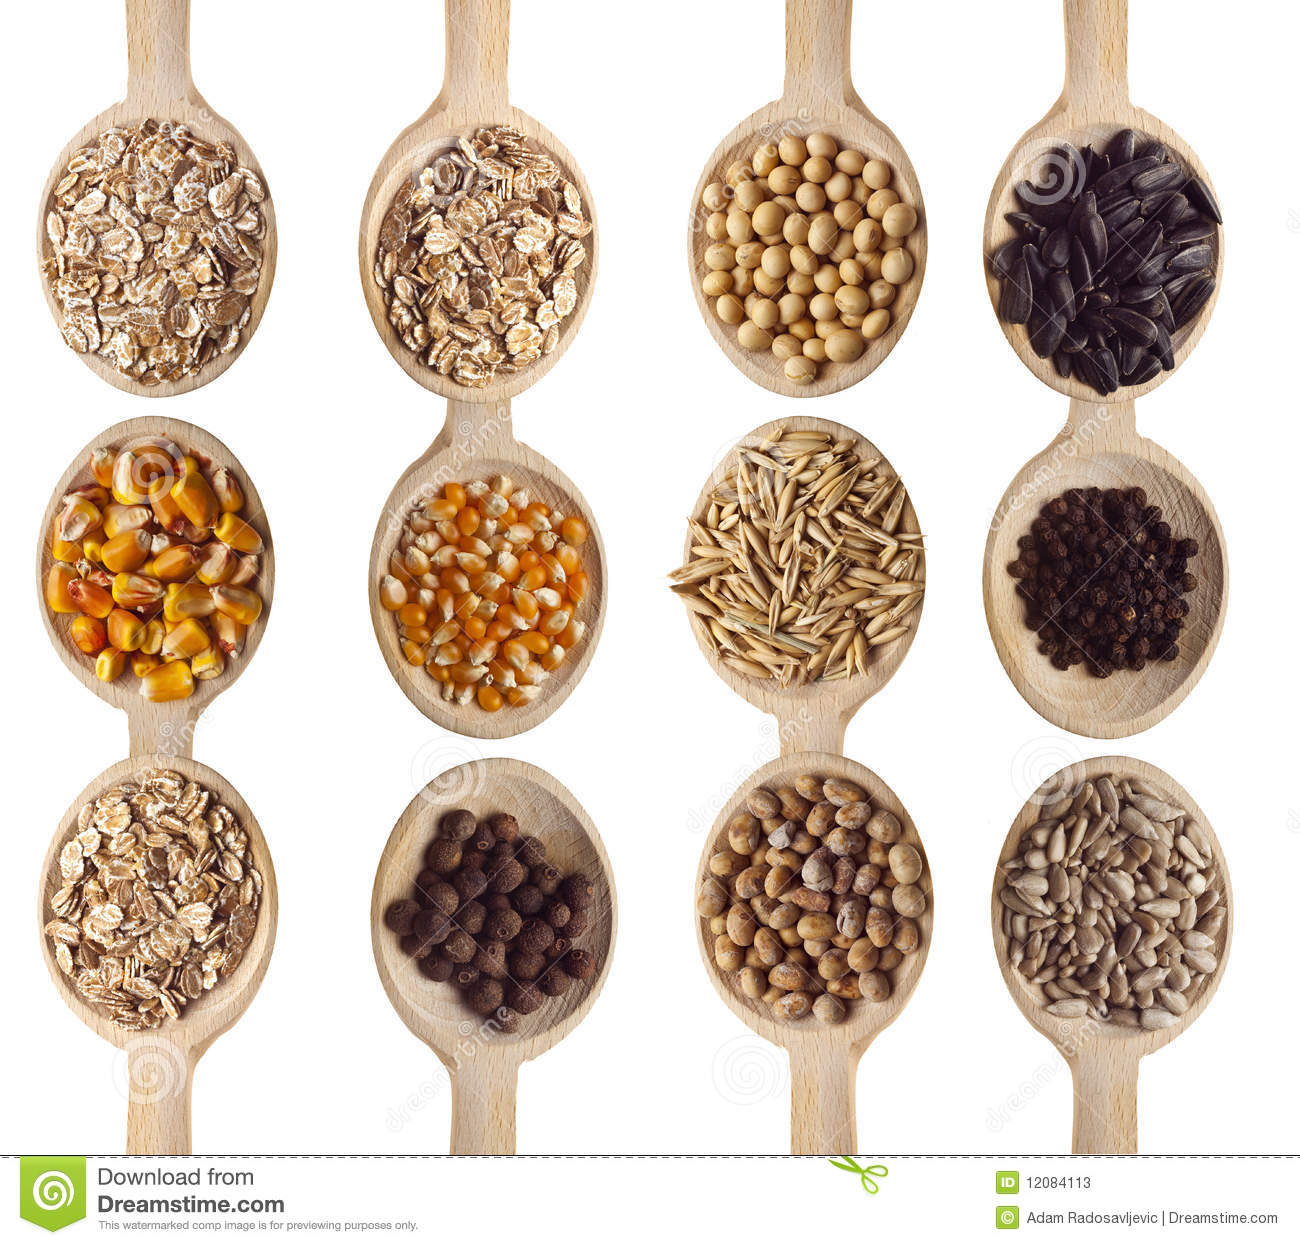 Grains And Cereal Food Stock Image. Image Of Soya, Spoon